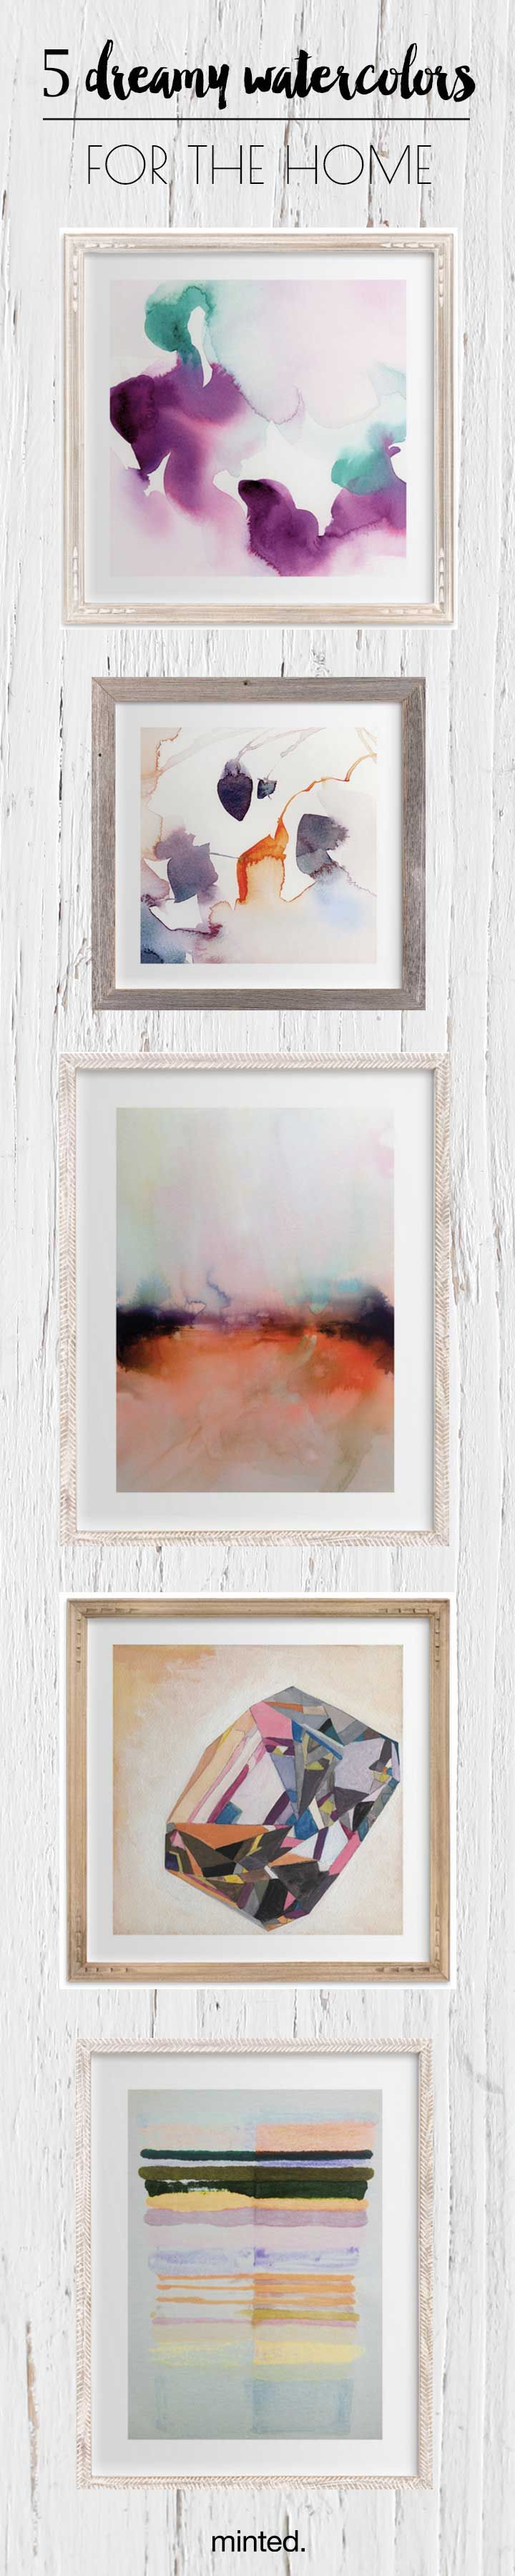 Beautiful dreamy watercolor artwork for home.